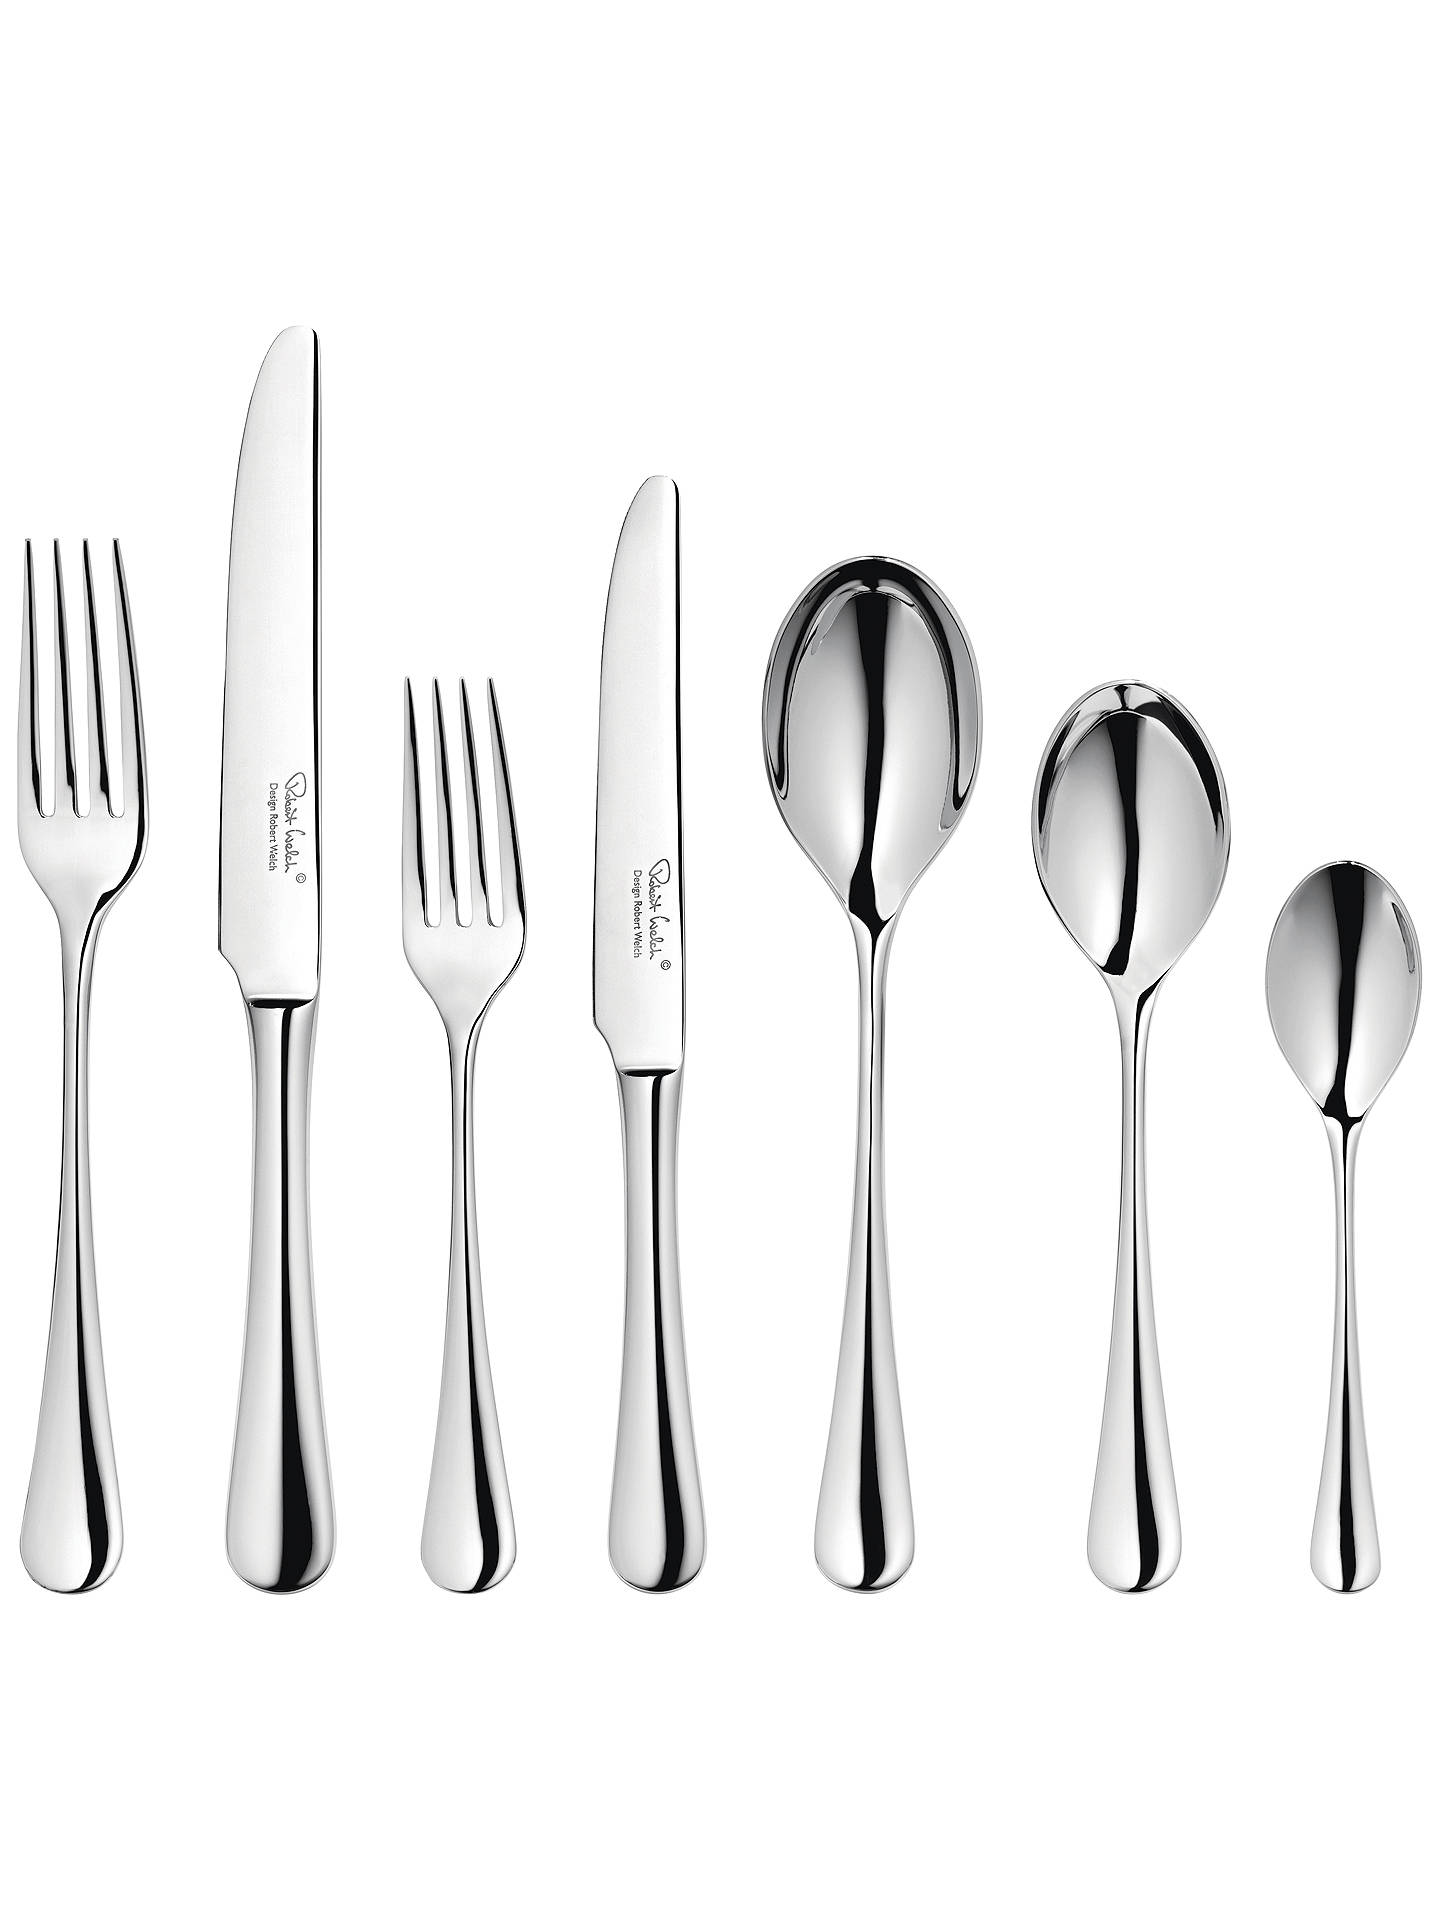 BuyRobert Welch Radford Cutlery Set, 84 Piece Online at johnlewis.com